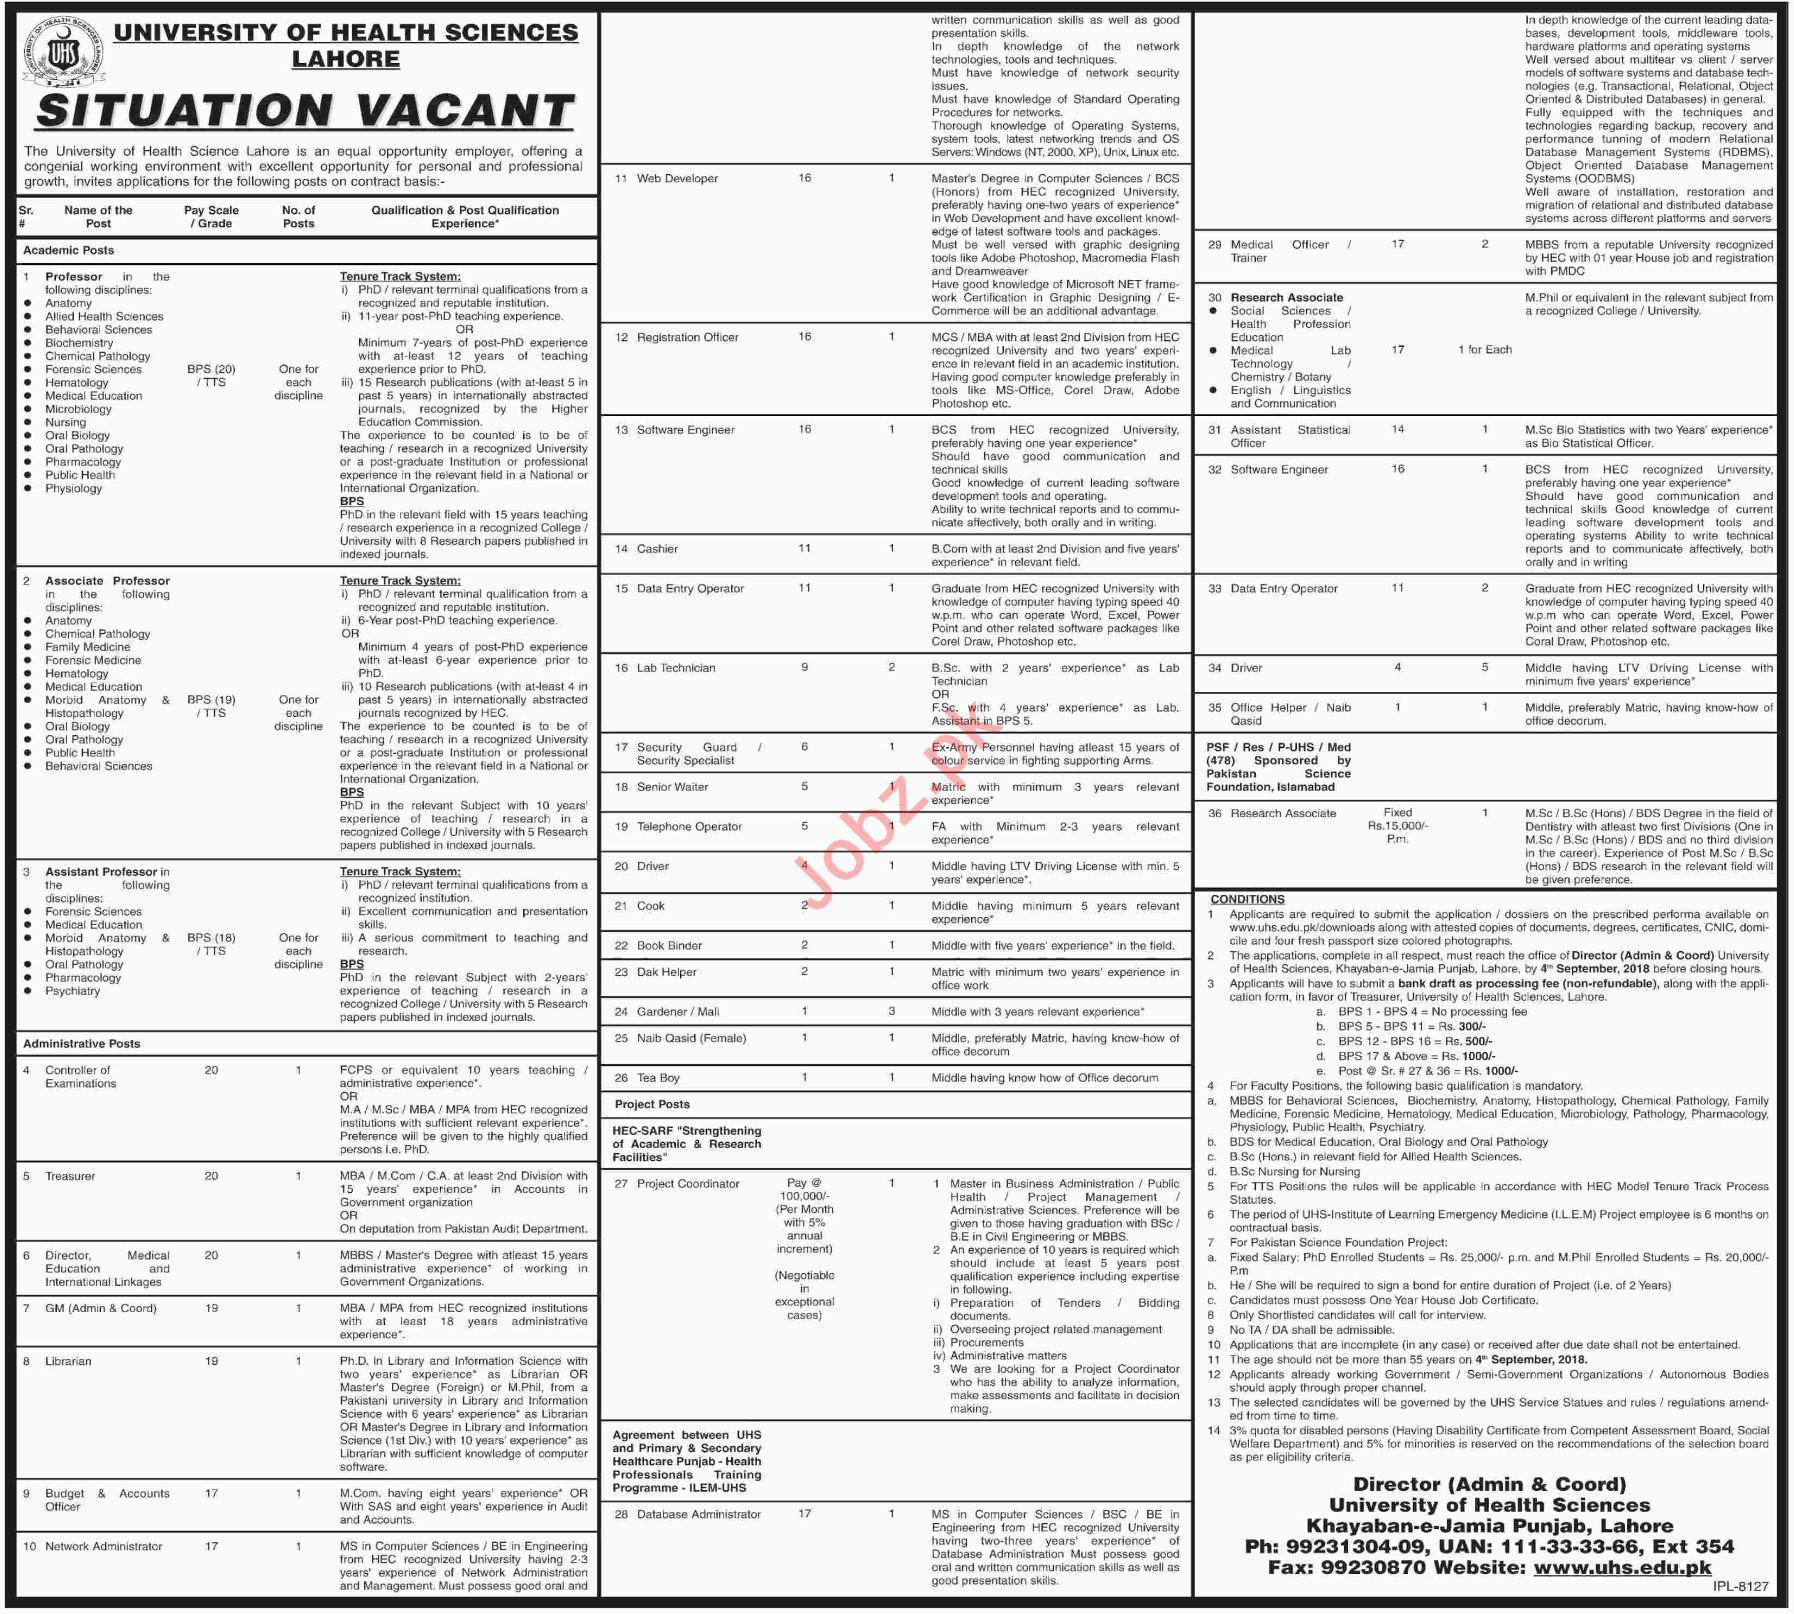 University of Health Sciences UHS Lahore Professors Jobs